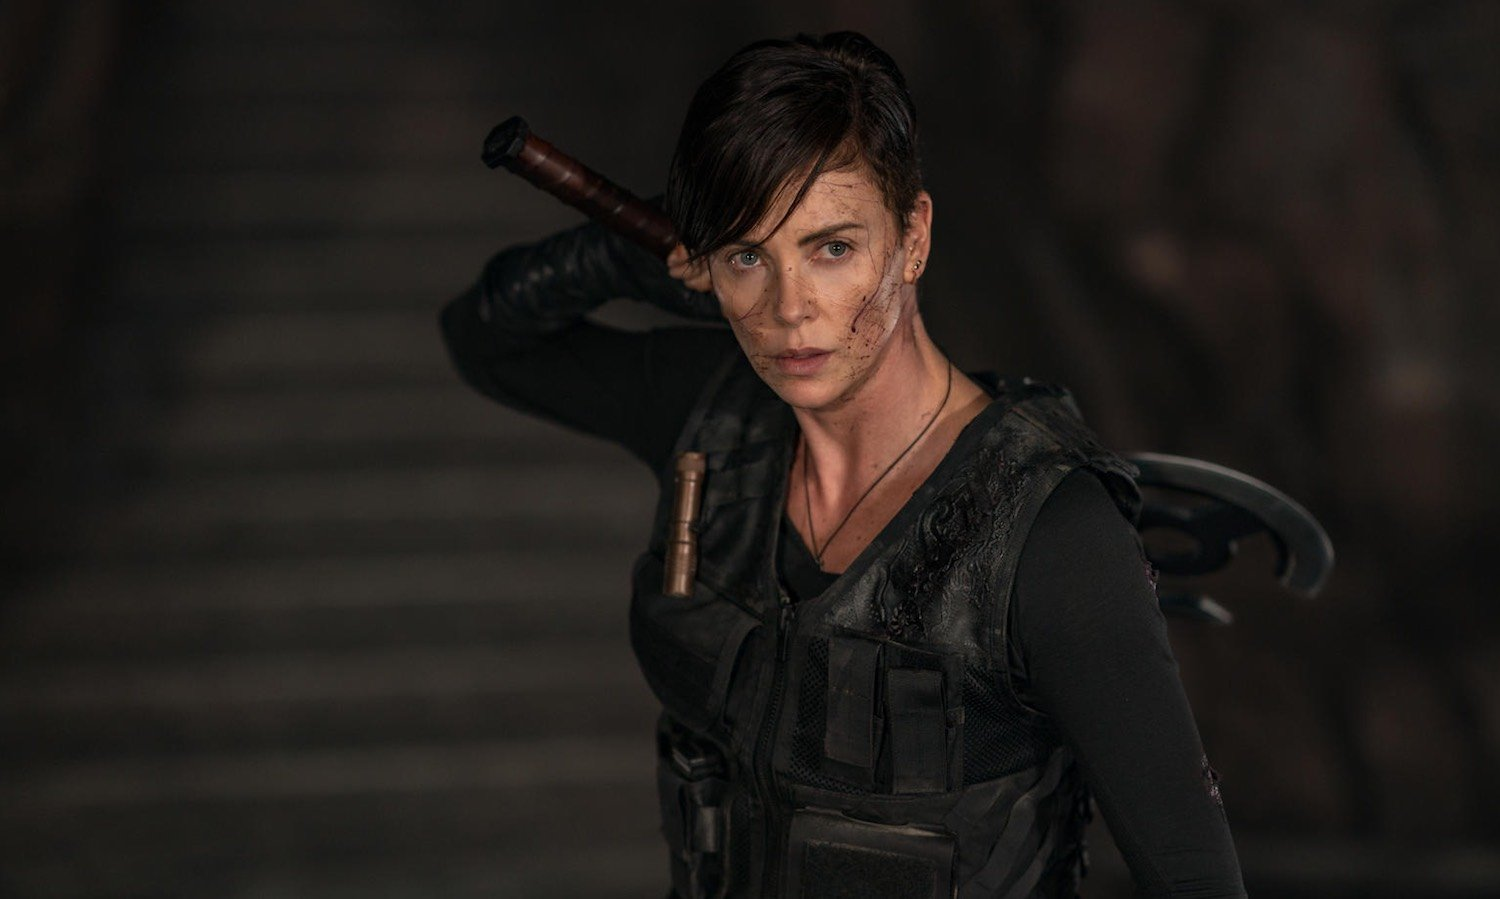 Charlize Theron muestra golpes de adrenalina en trailer de 'The old guard'